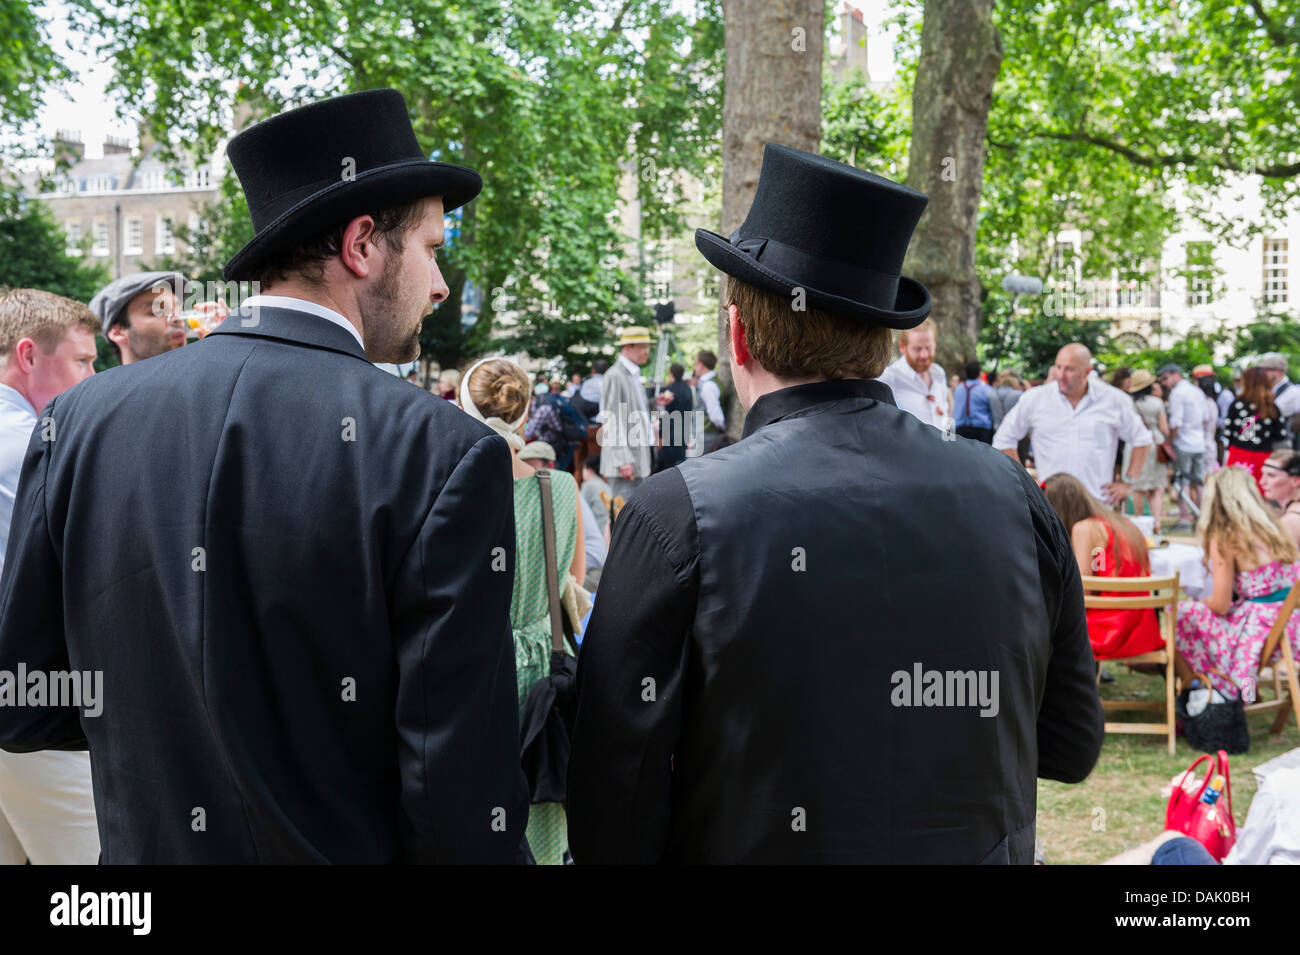 Two chaps wearing top hats at the Chaps Olympiad in Bedford Square Gardens. - Stock Image